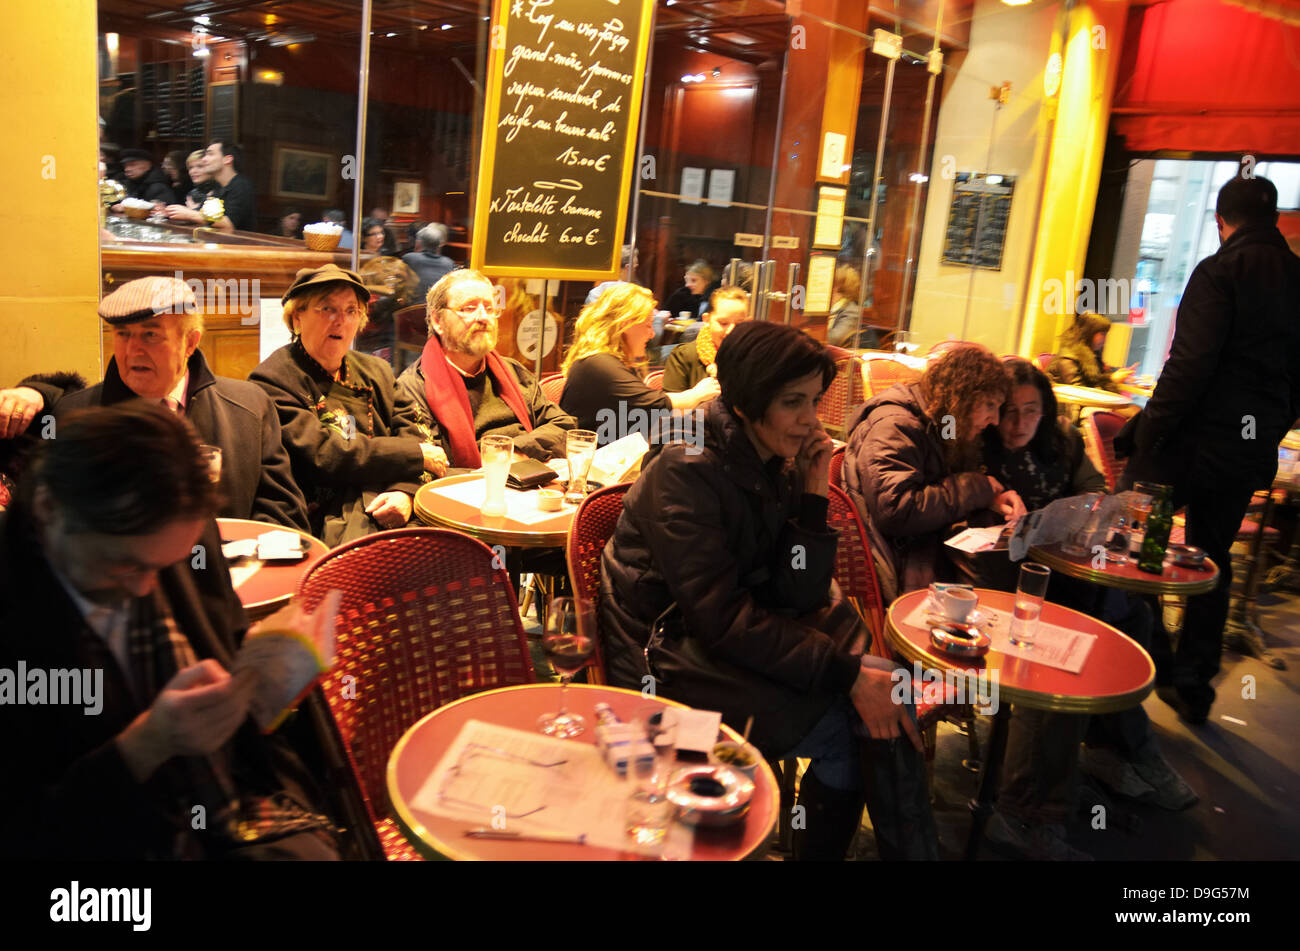 People at street cafe in Paris, France - Jan 2012 Stock Photo